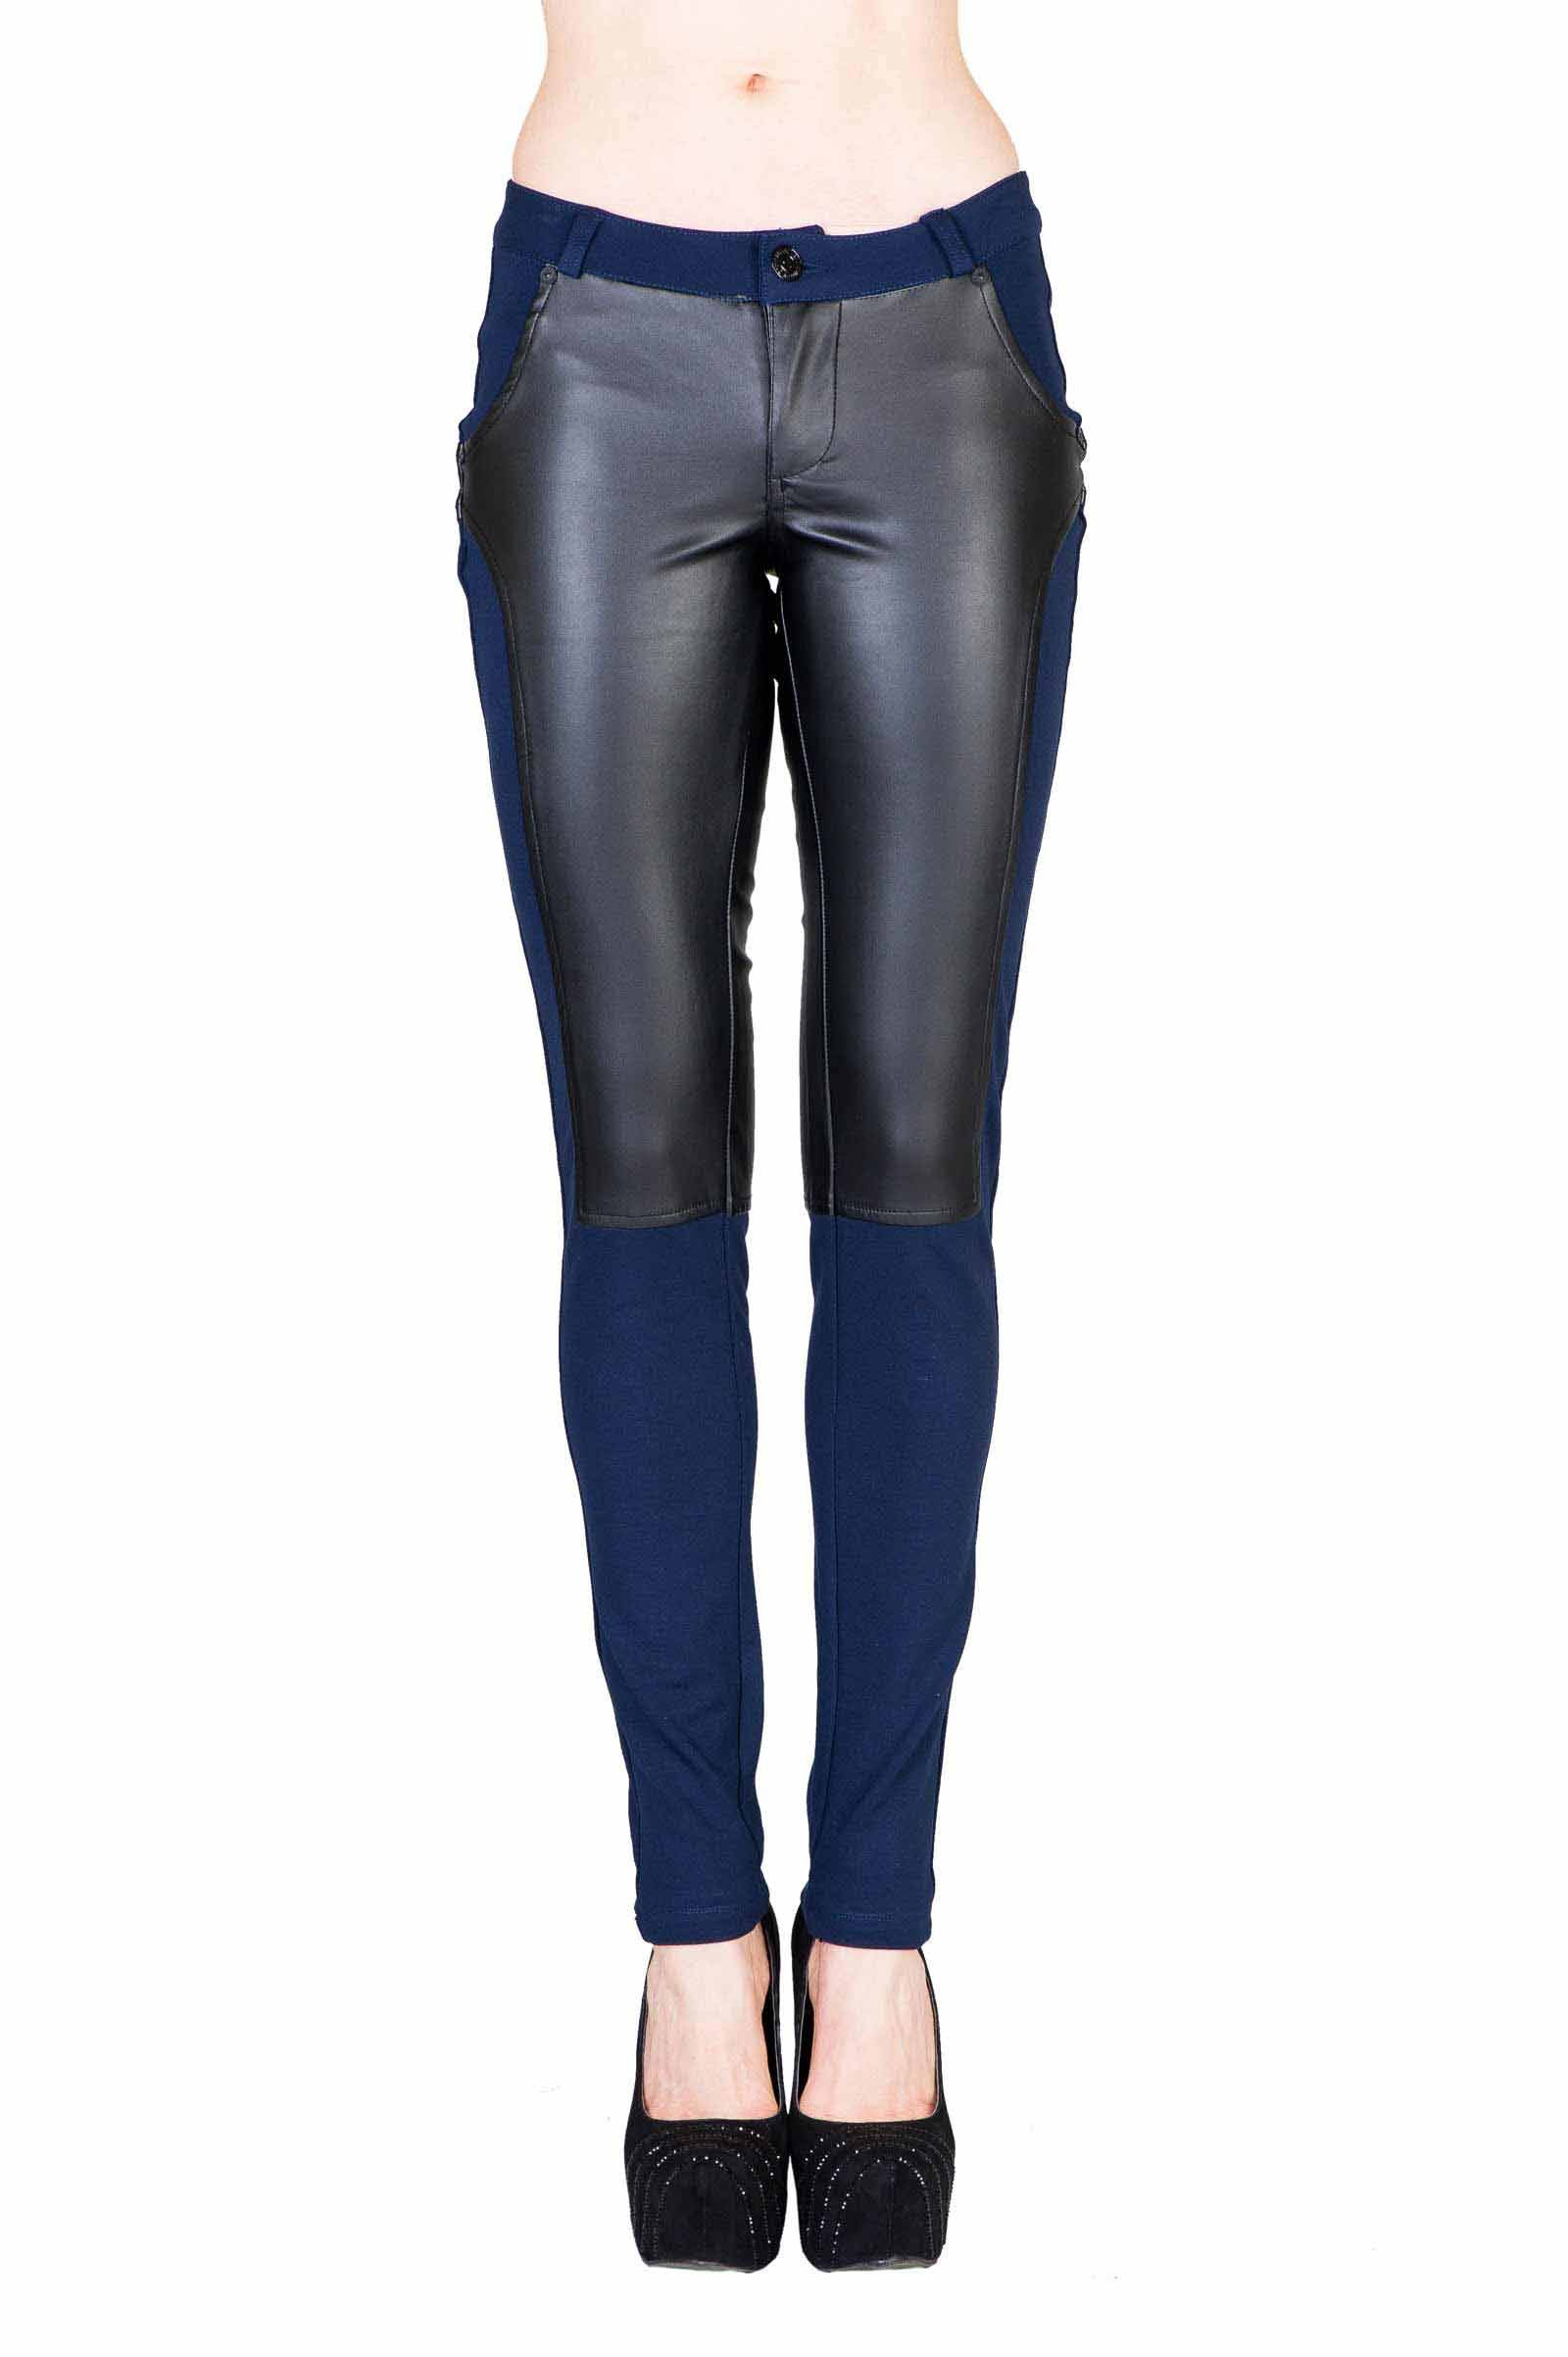 VIRGIN ONLY Women's Textured Skinny Pants (73 Navy, Size S)